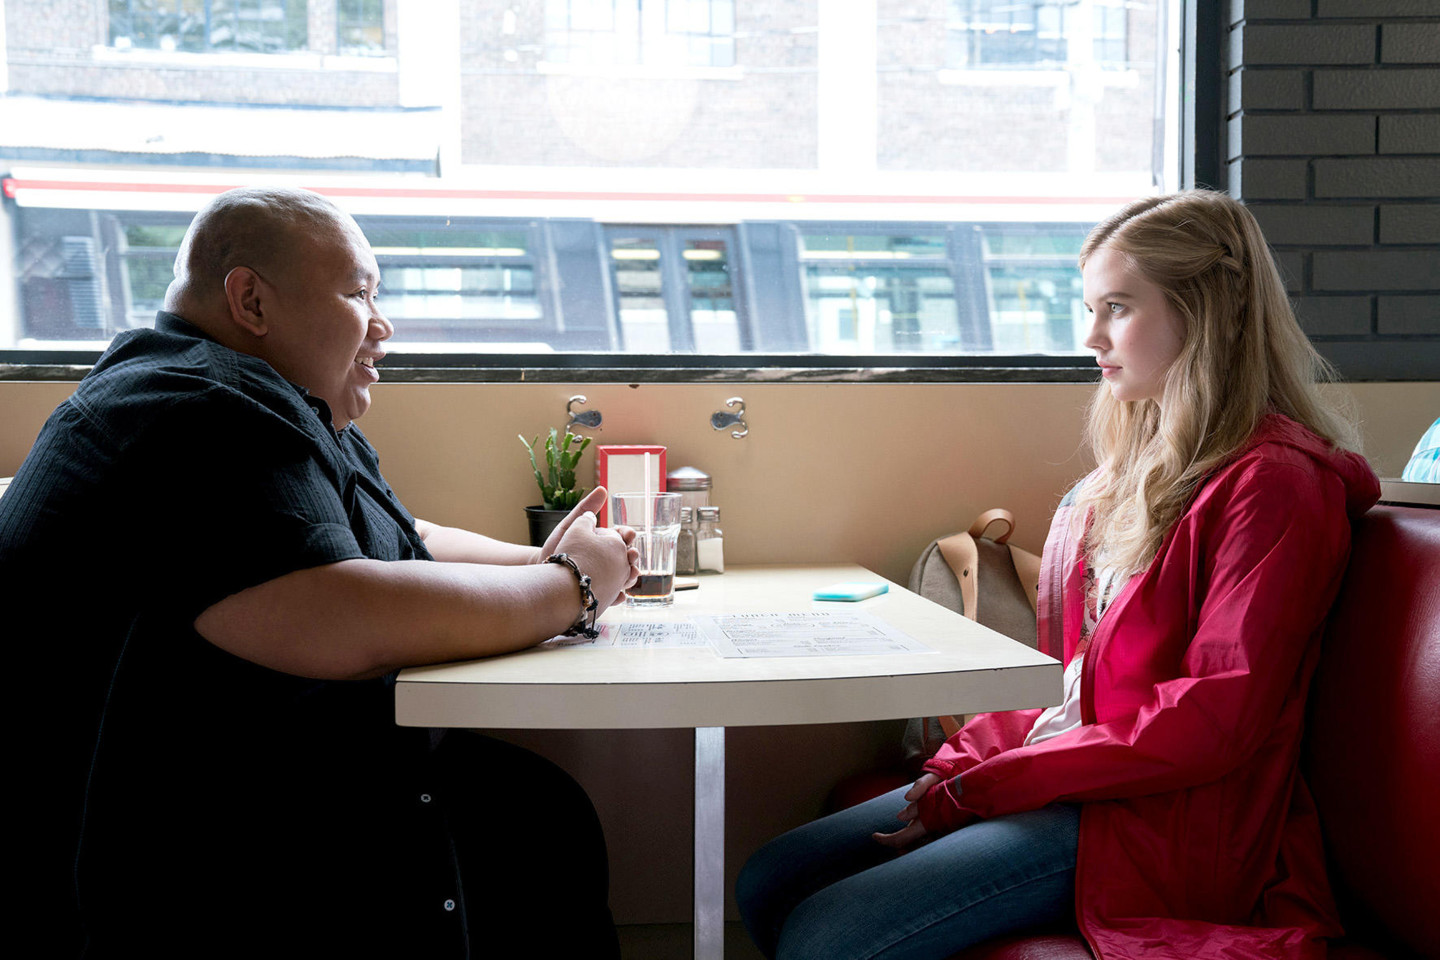 debby-ryan-angourie-rice-every-day-2018-movie-poster-and-stills-3.jpg